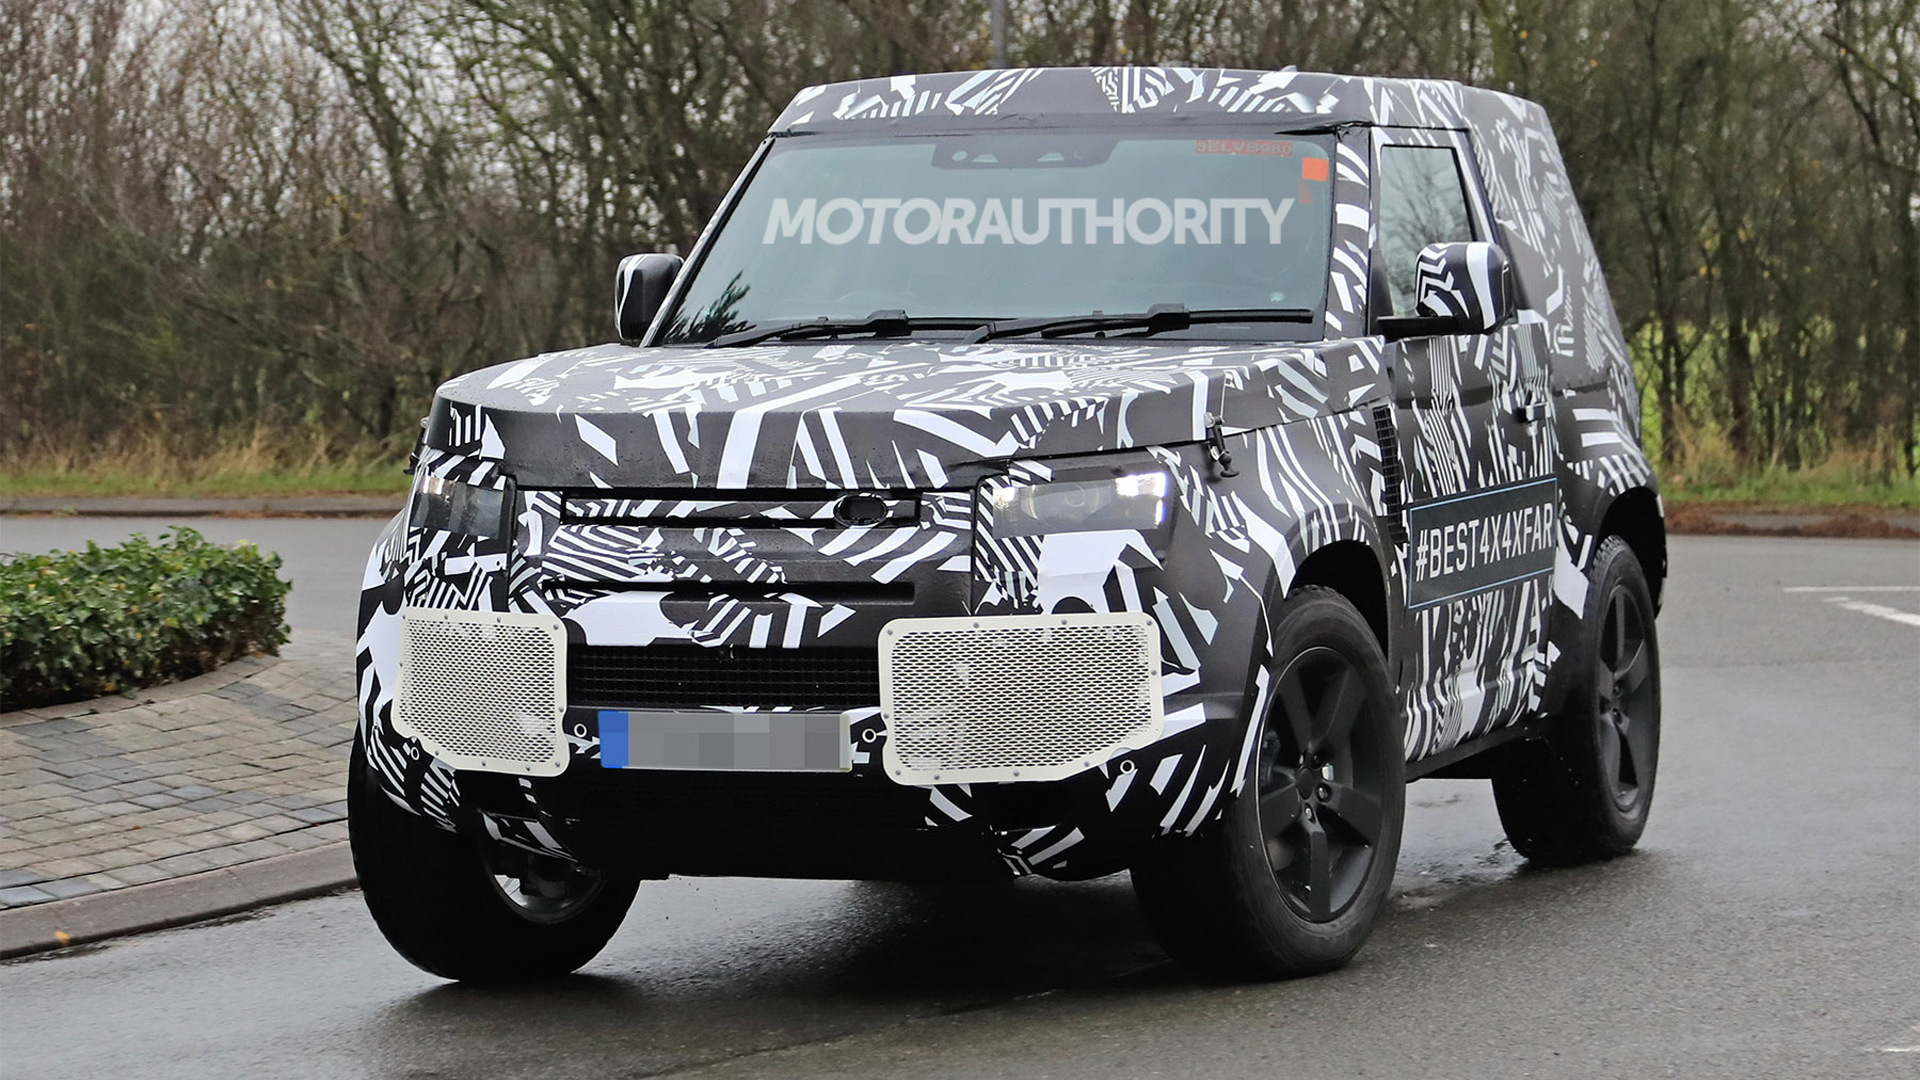 2020 Land Rover Defender 3-door spy shots - Image via S. Baldauf/SB-Medien